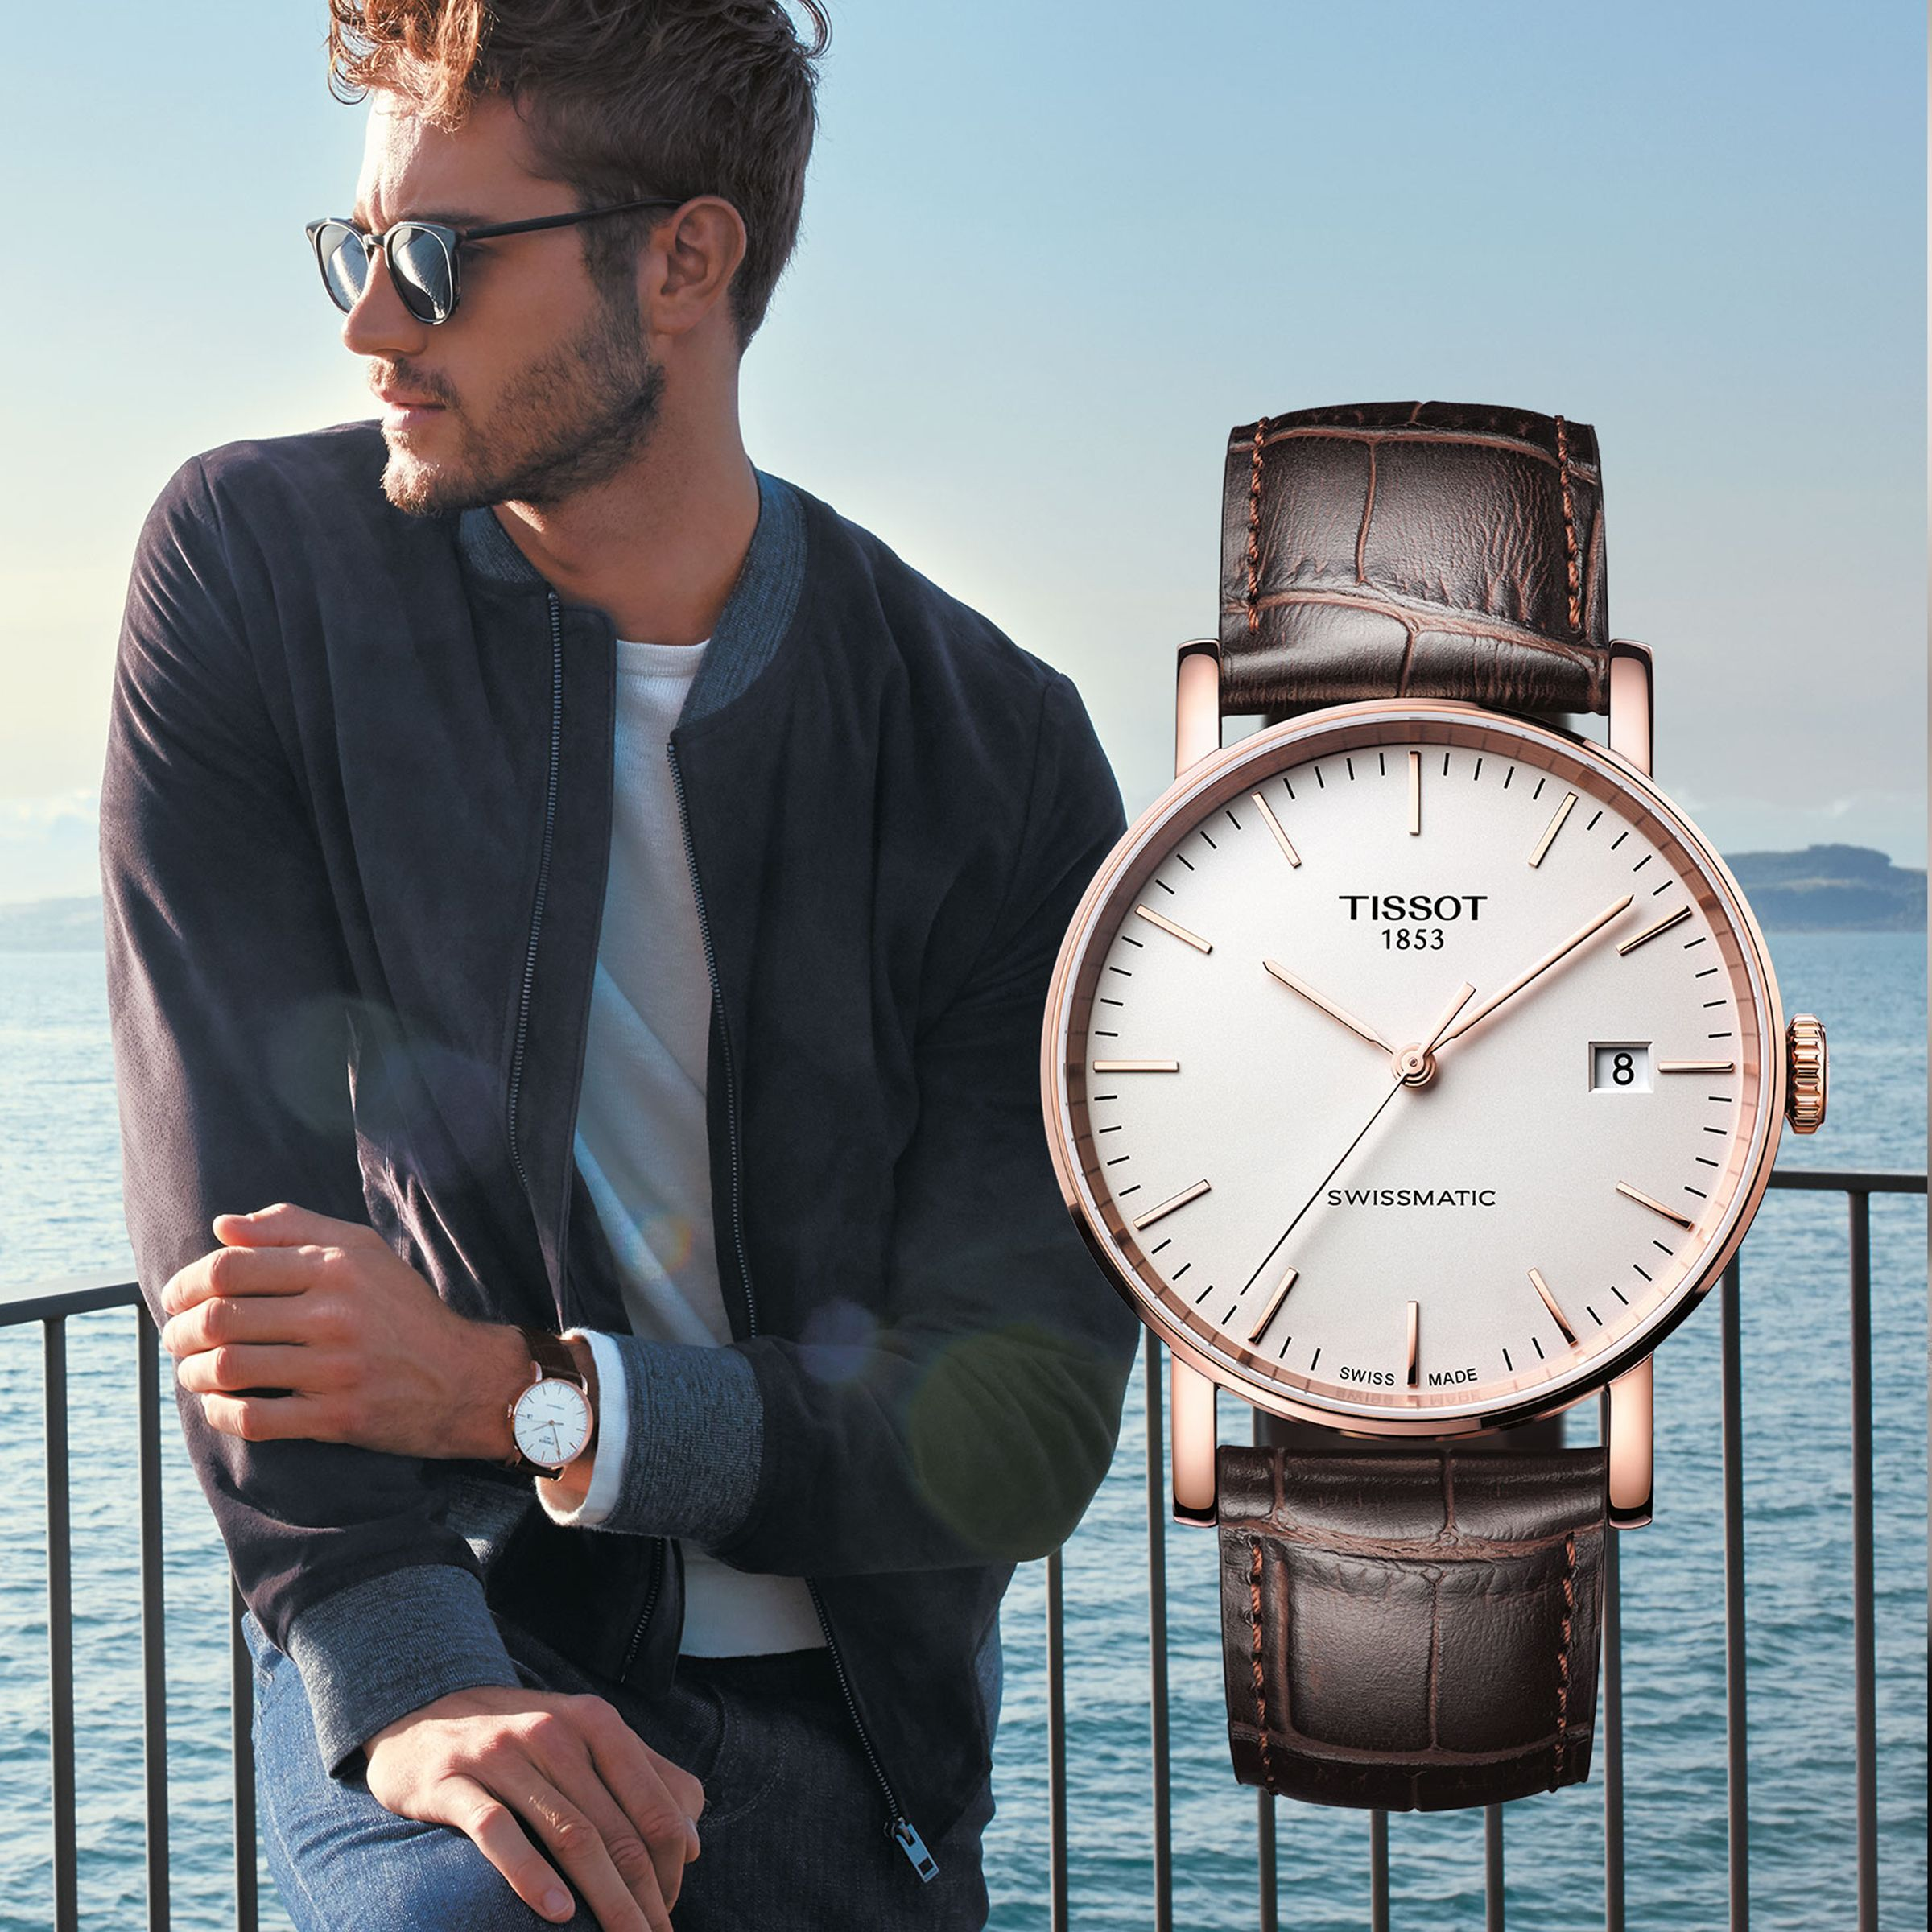 steel very high attire up business your wear match with wristwatch luminous brand watch waterproof easy tevise or stainless malaysia features watches men luxury mechanical material automatic to quality casual sport fashion